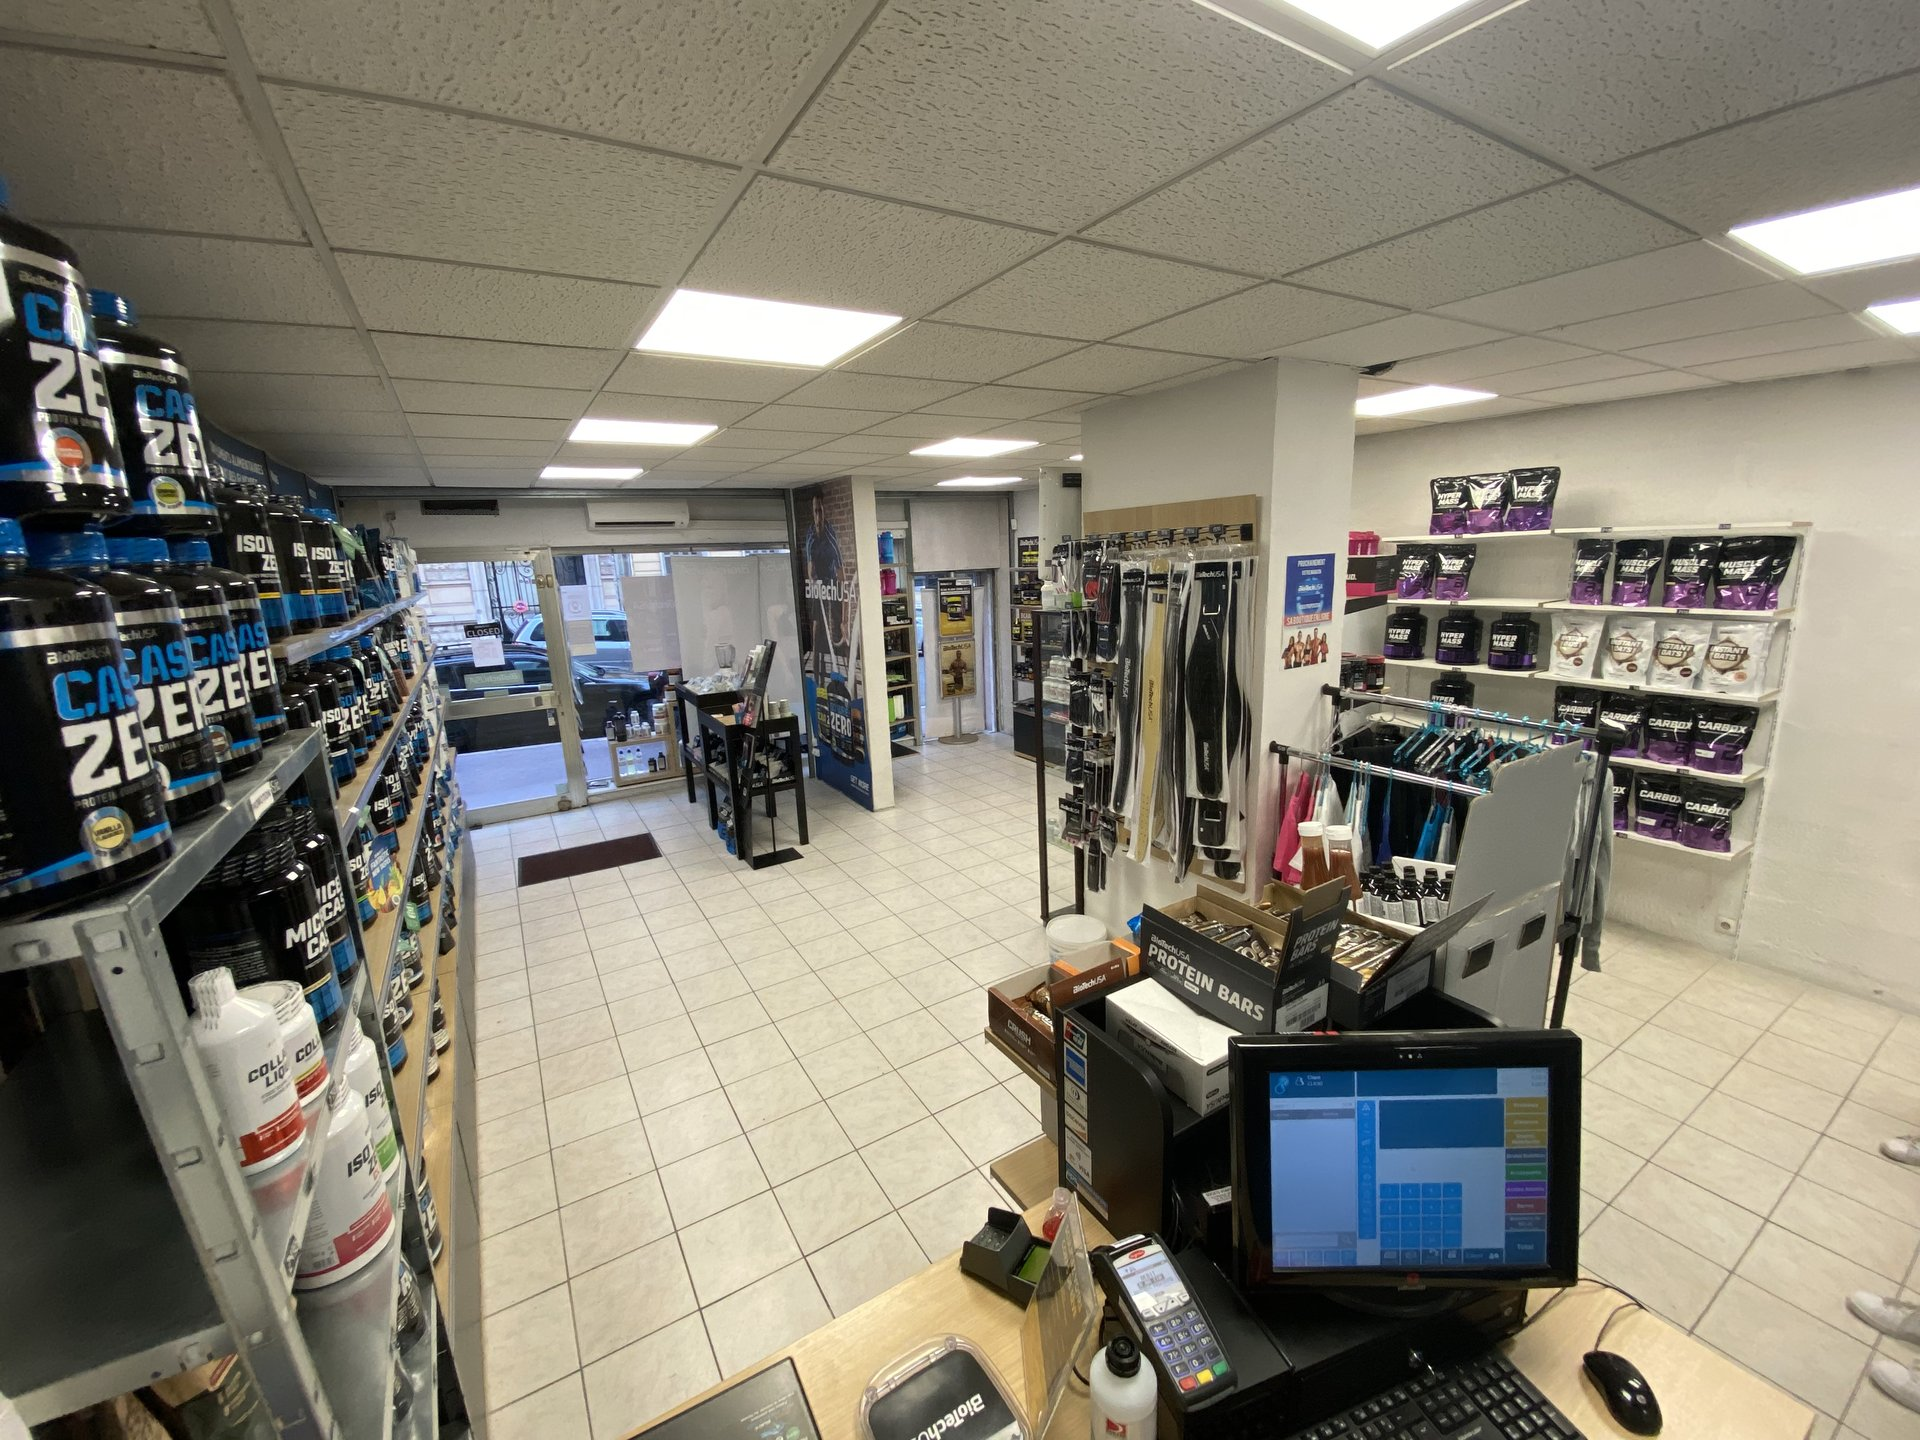 LOCATION LOCAL COMMERCIAL - 620 m² - LIBERATION